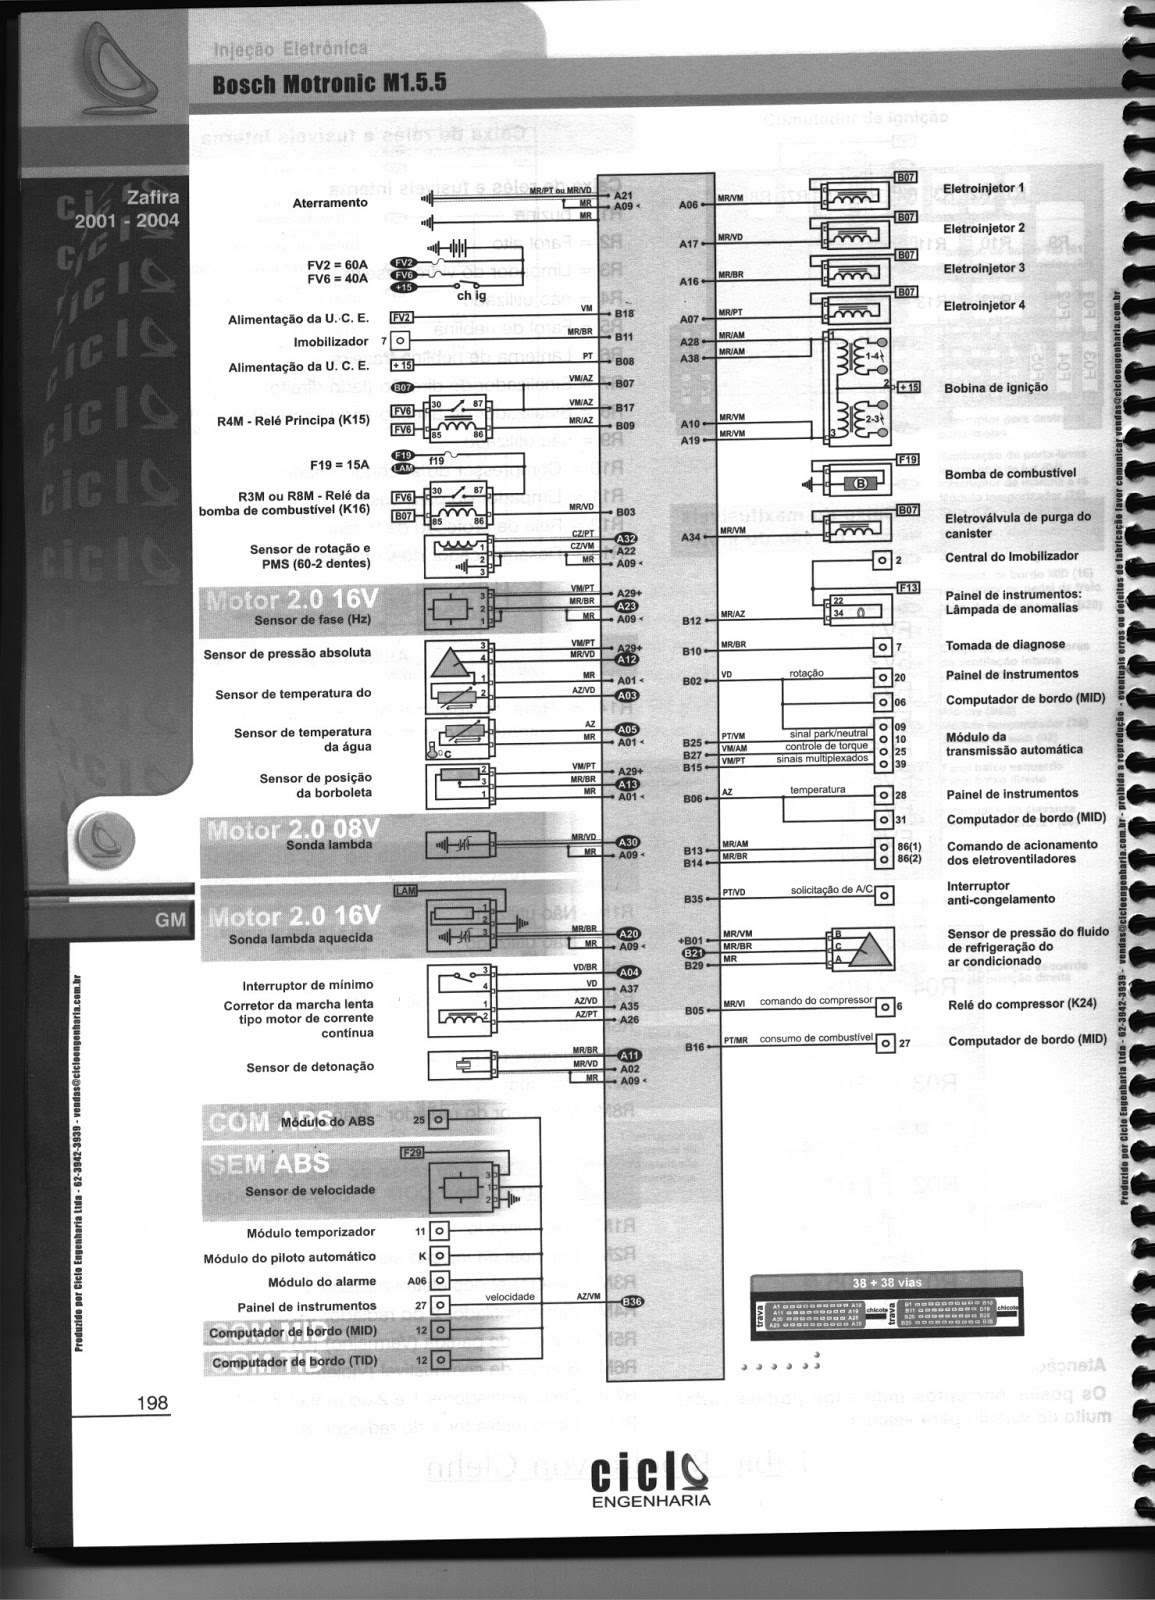 mazda b2200 fuse box diagram mazda free engine image for user manual download 2003 ford taurus throttle body diagram 2003 taurus fuse box diagram [ 1155 x 1600 Pixel ]